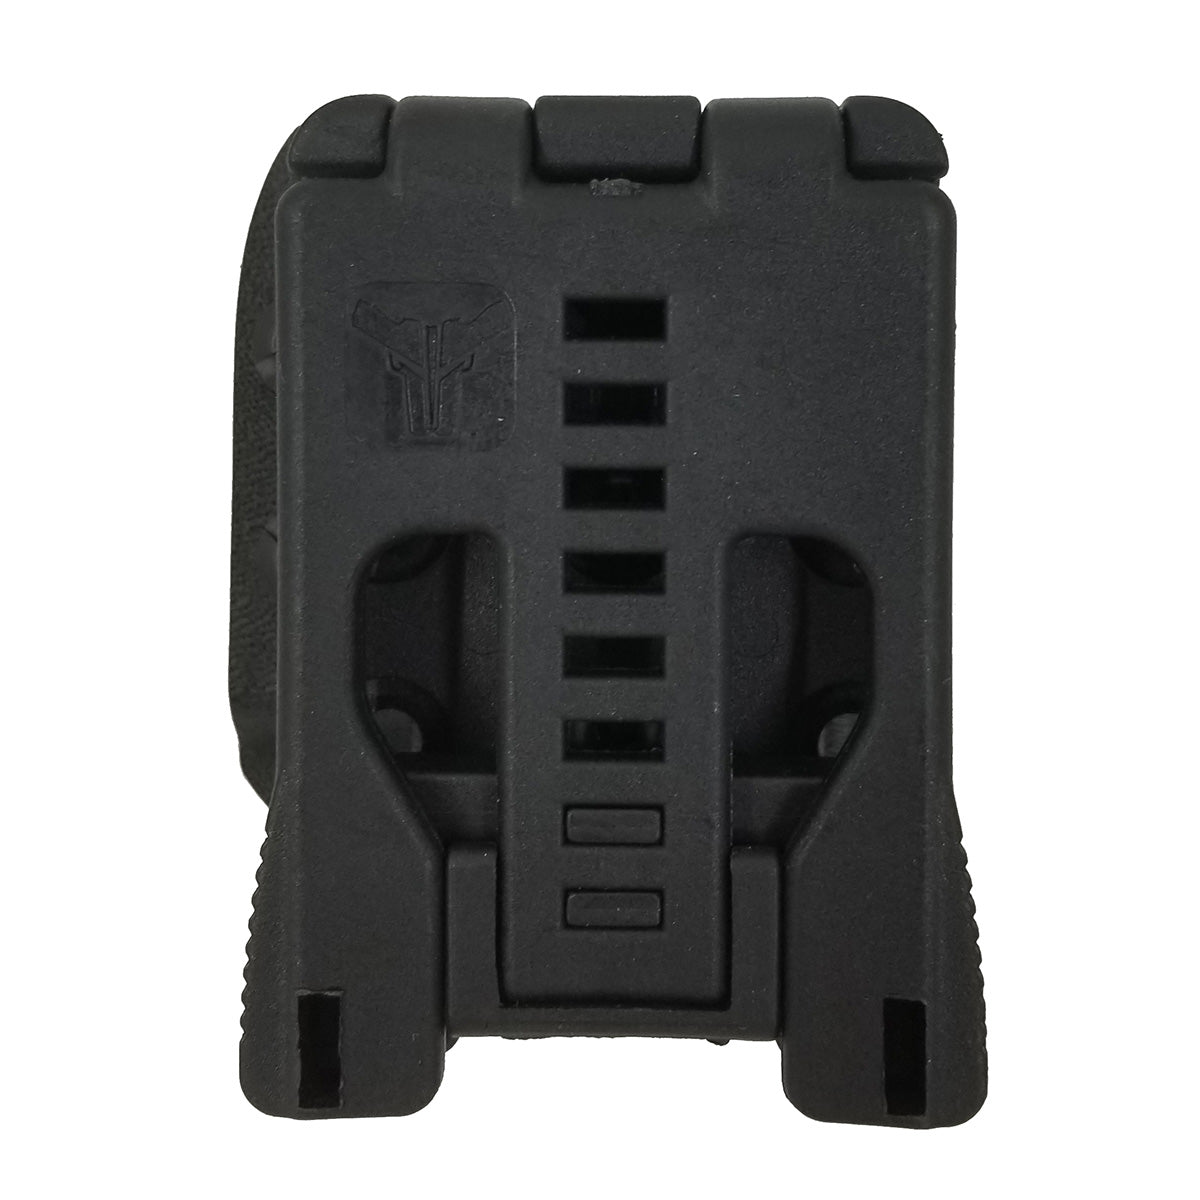 Double Stack 9/40 OWB Magazine Pouch